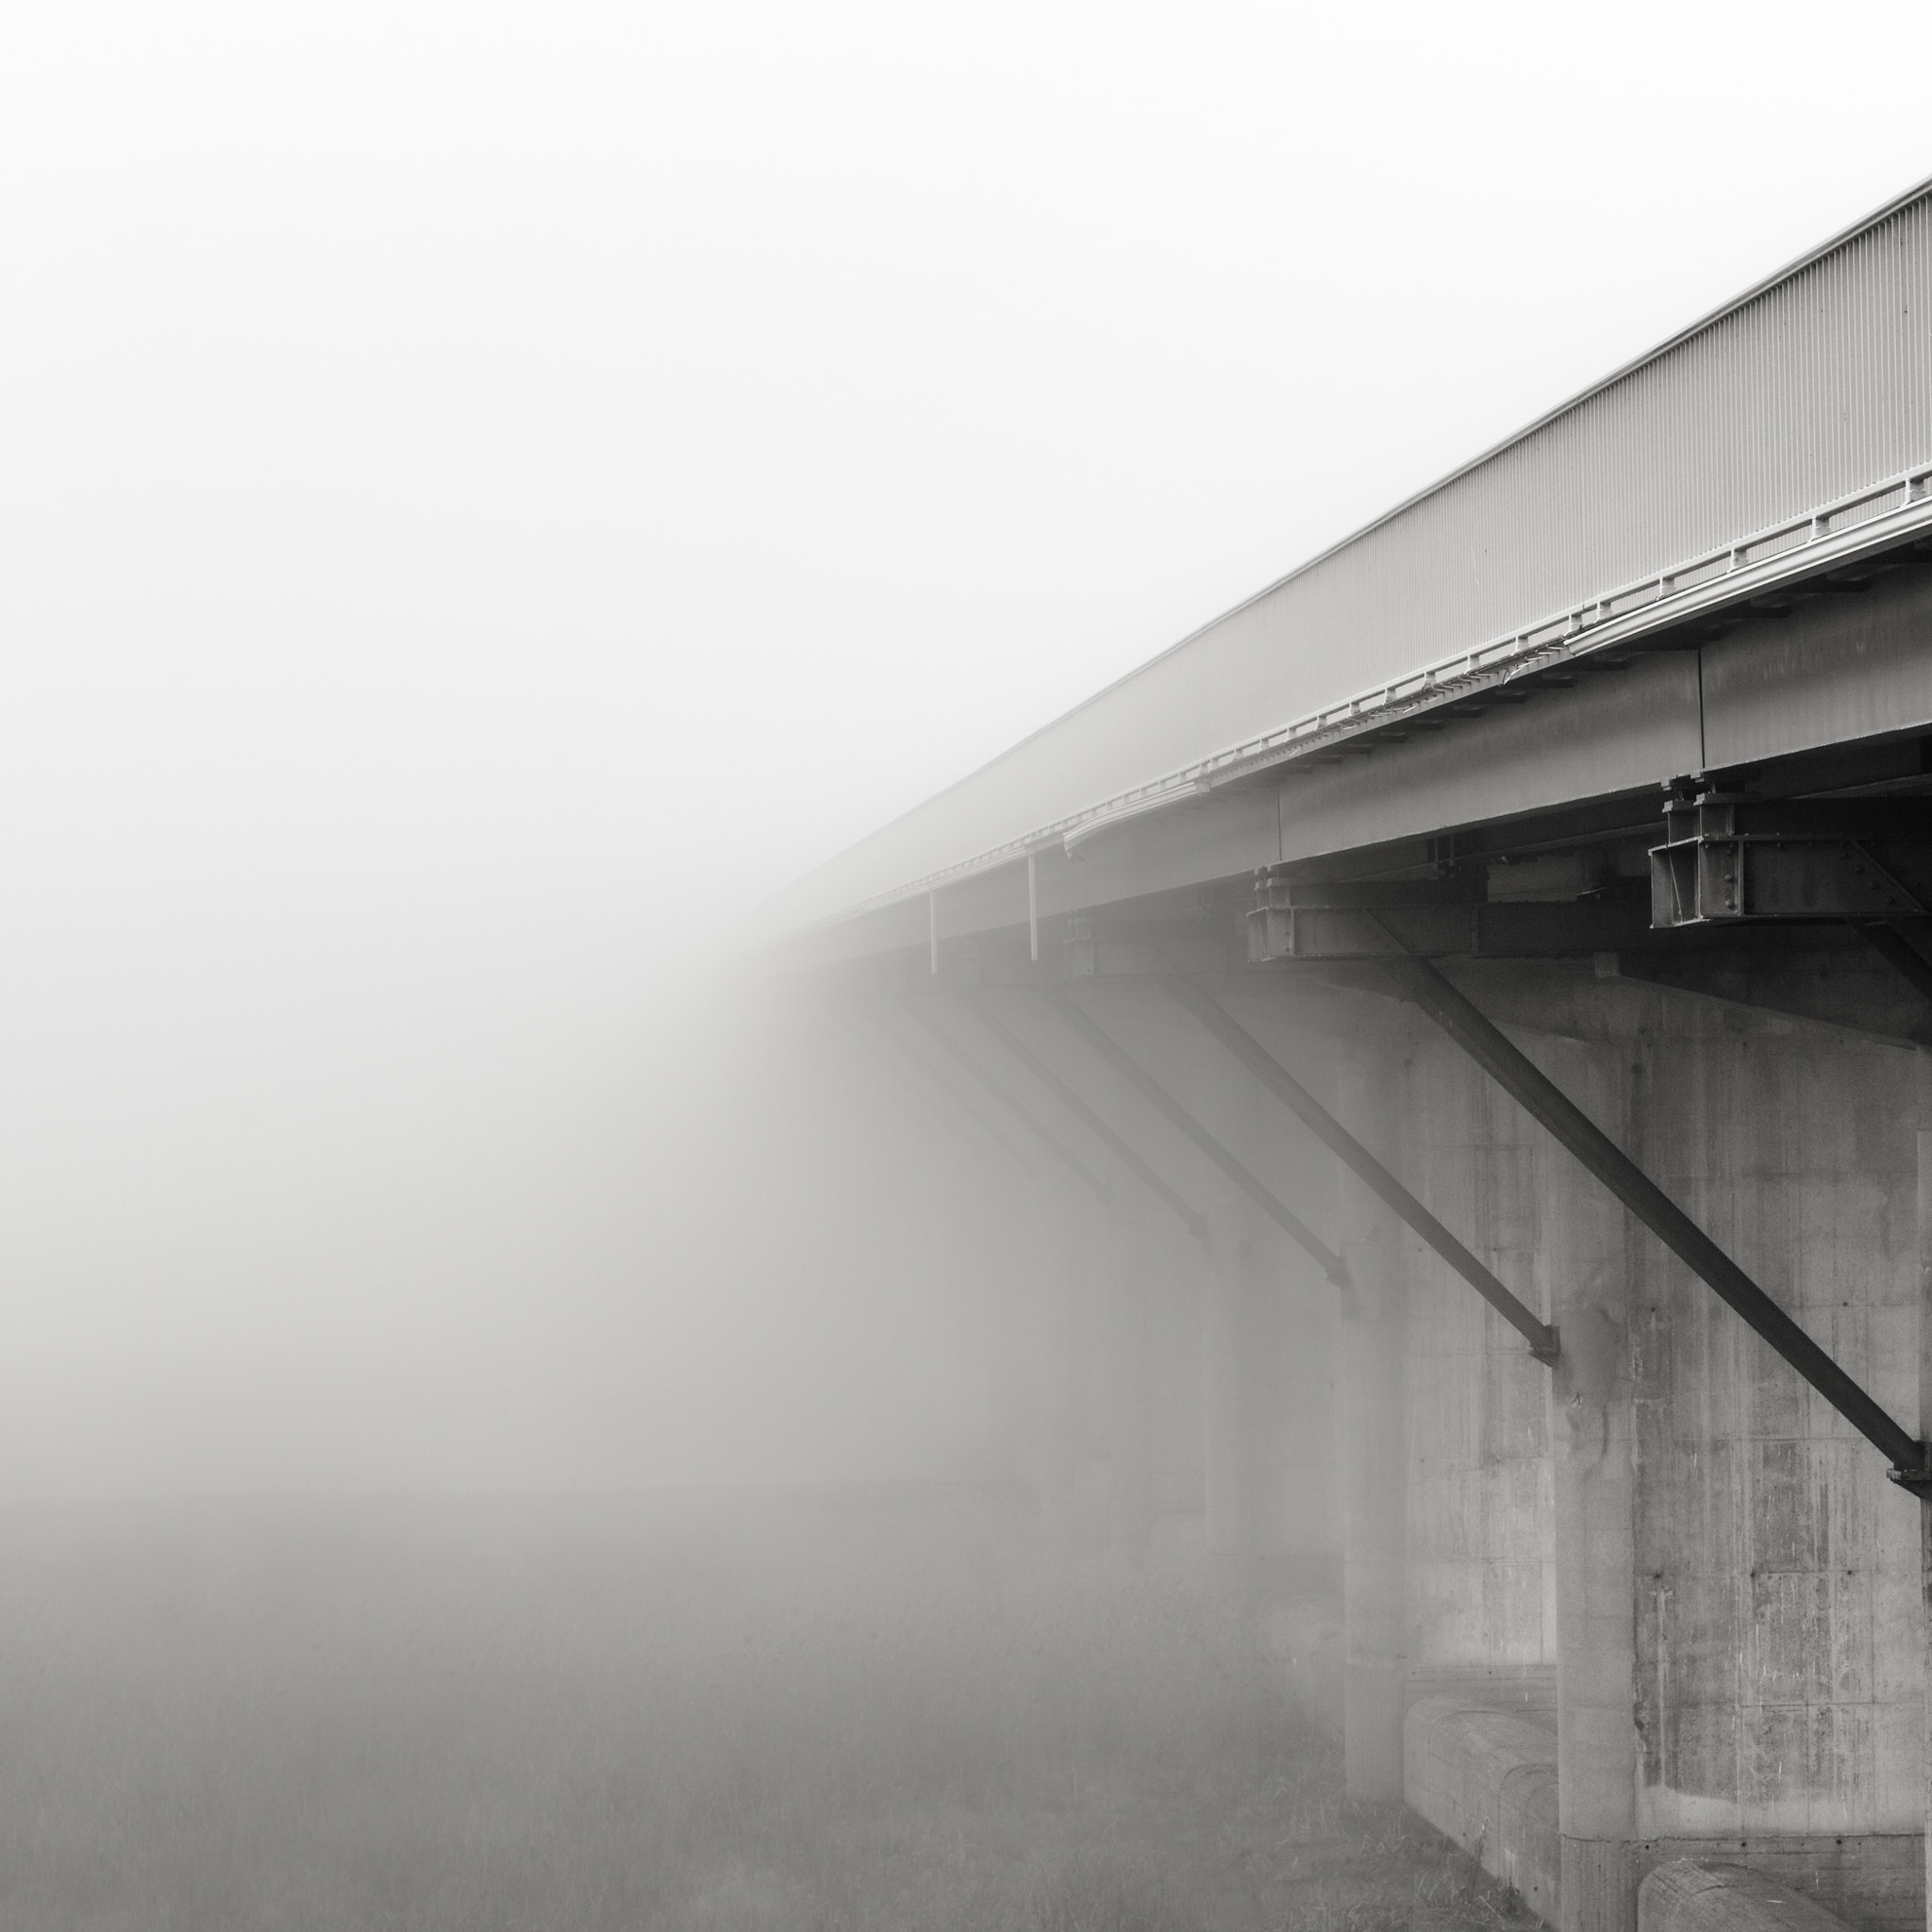 Photograph fog of life by Christian Richter on 500px